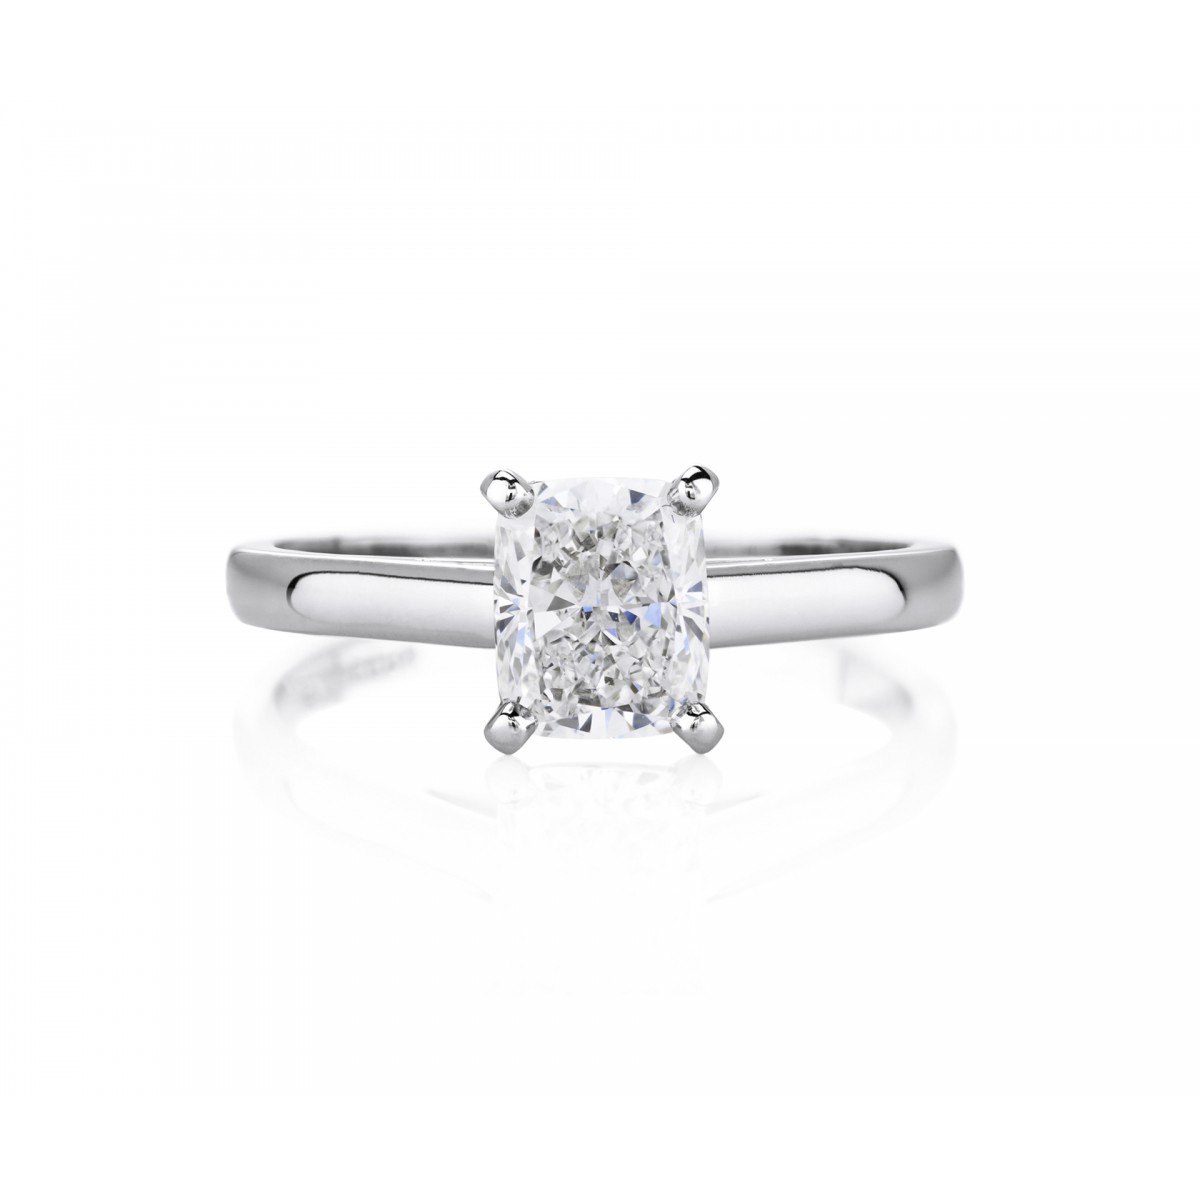 78294f83f9d7 De Beers Wedding Jewellery - ROCK MY WEDDING